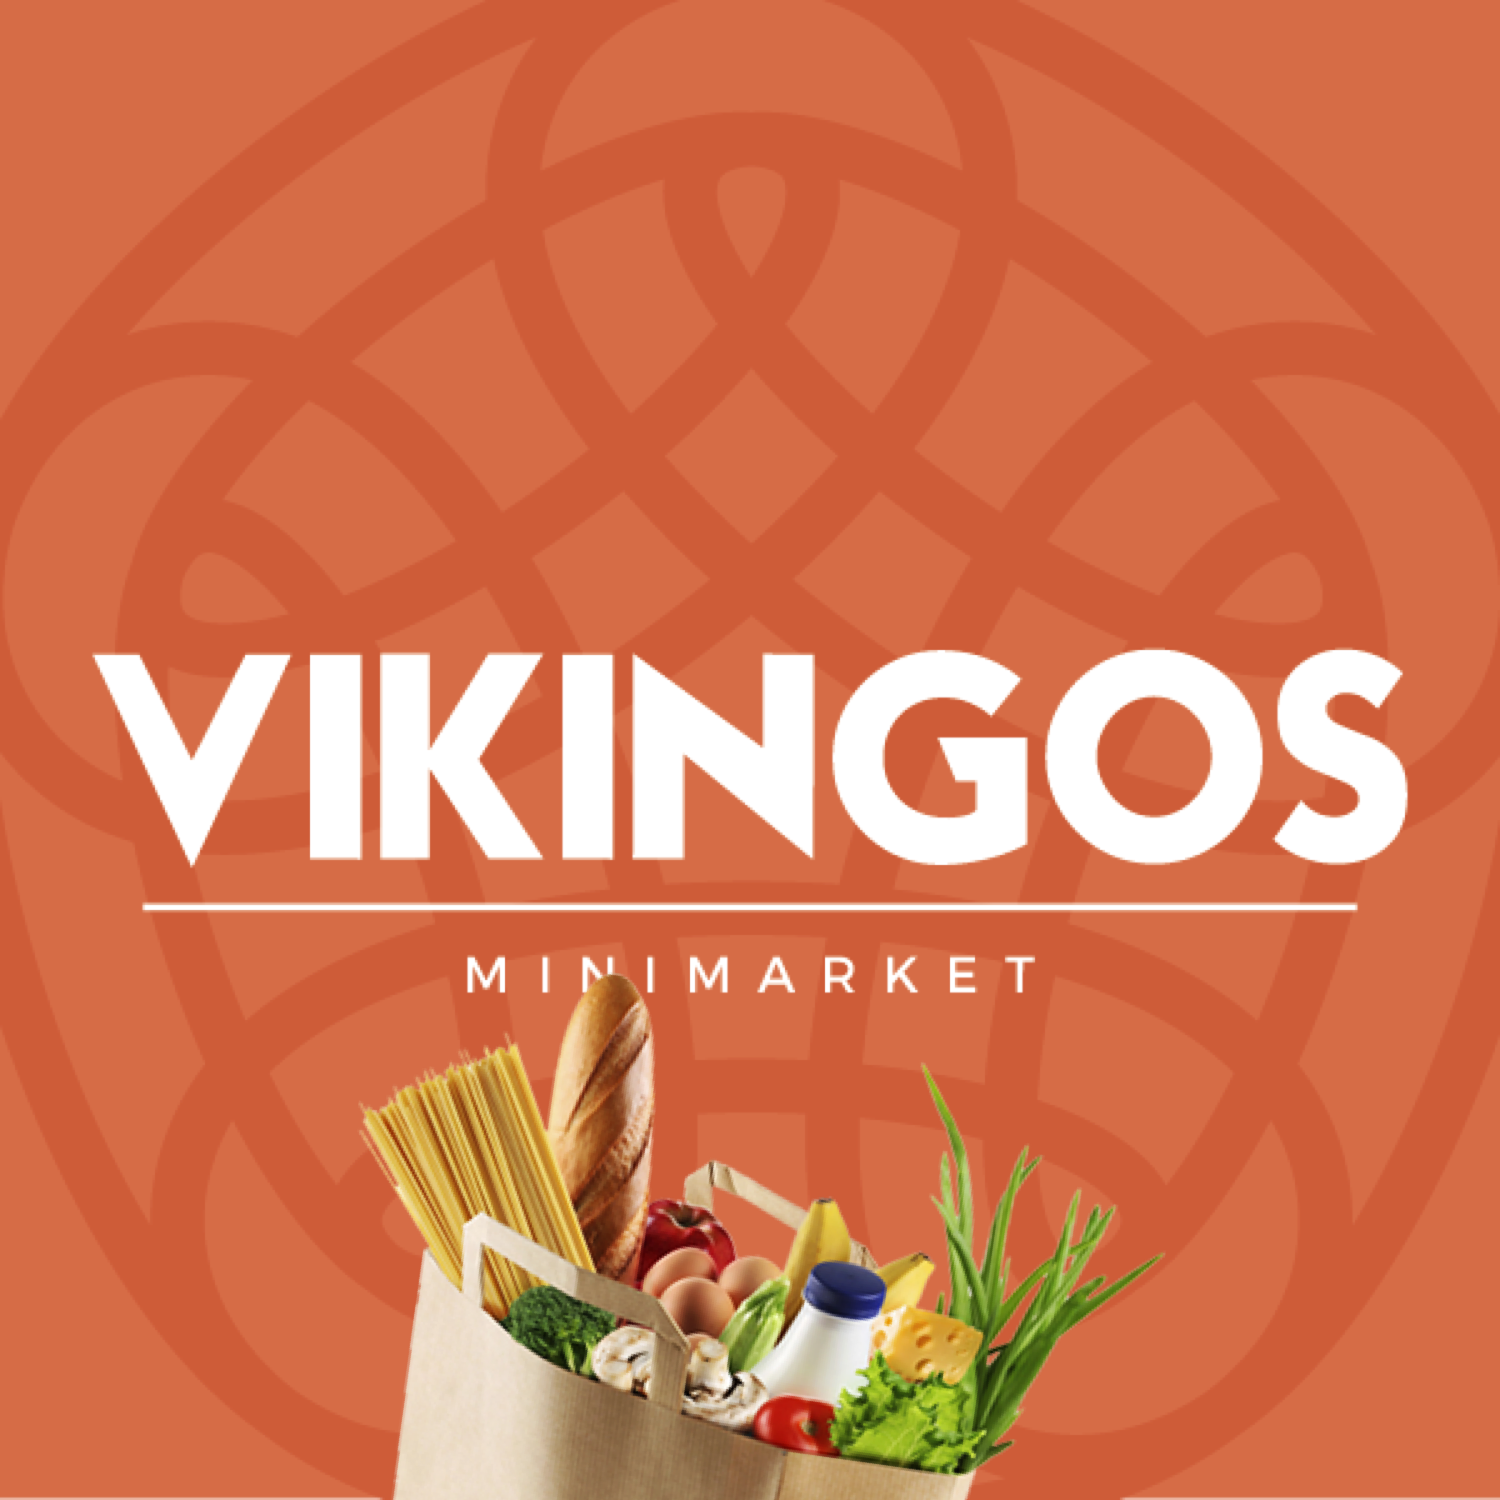 Vikingos - Branding for a the Scandinavian Grocery Chain